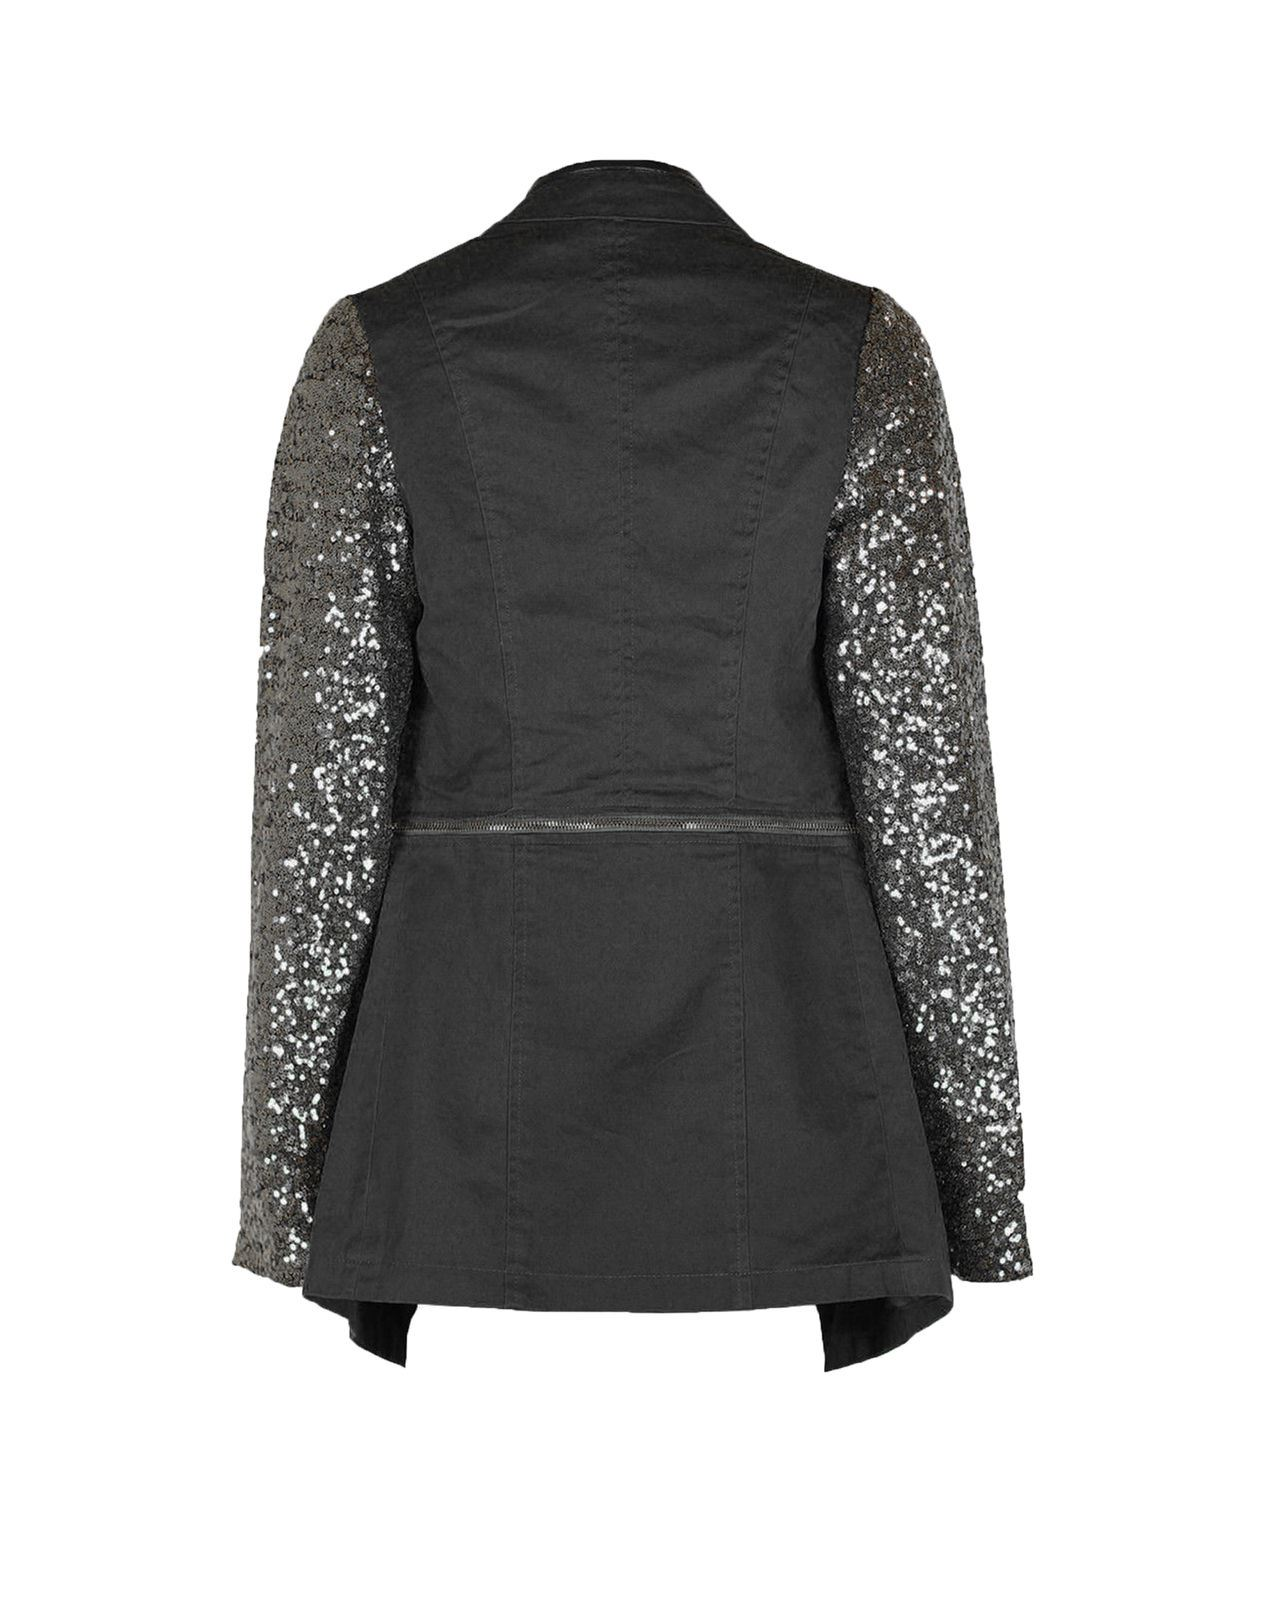 Discover the right Women's Black Sequin Jacket or a Juniors Black Sequin Jacket at Macy's. Macy's Presents: The Edit - A curated mix of fashion and inspiration Check It Out Free Shipping with $75 purchase + Free Store Pickup.